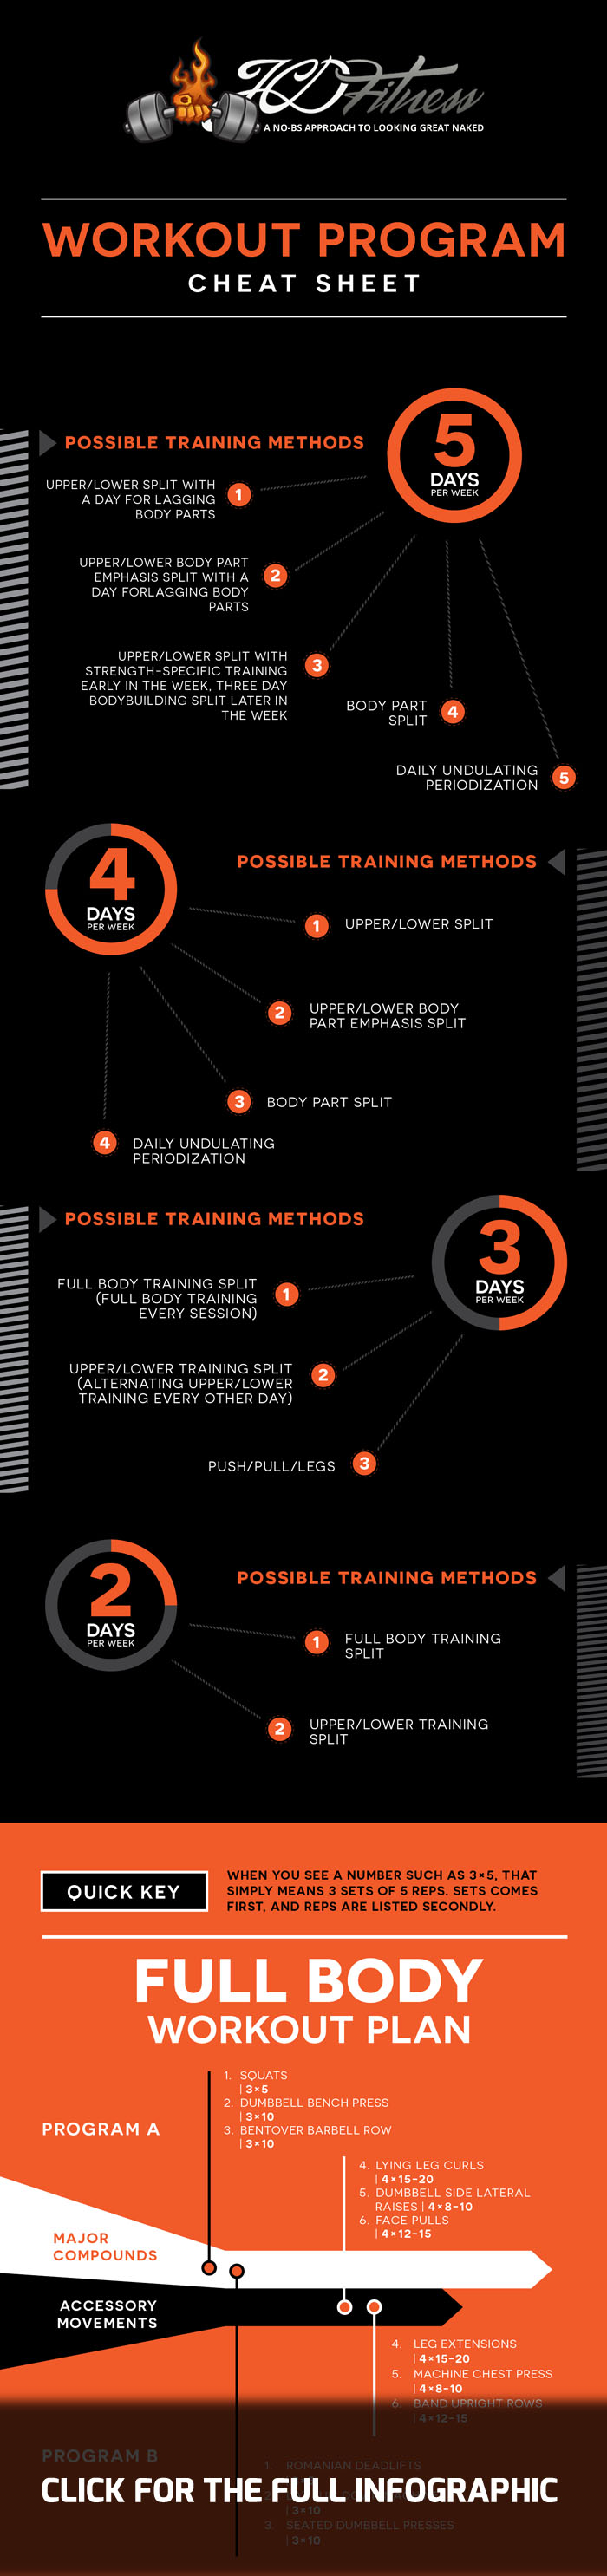 undulating periodization template - workout plans which program is right for you jcd fitness